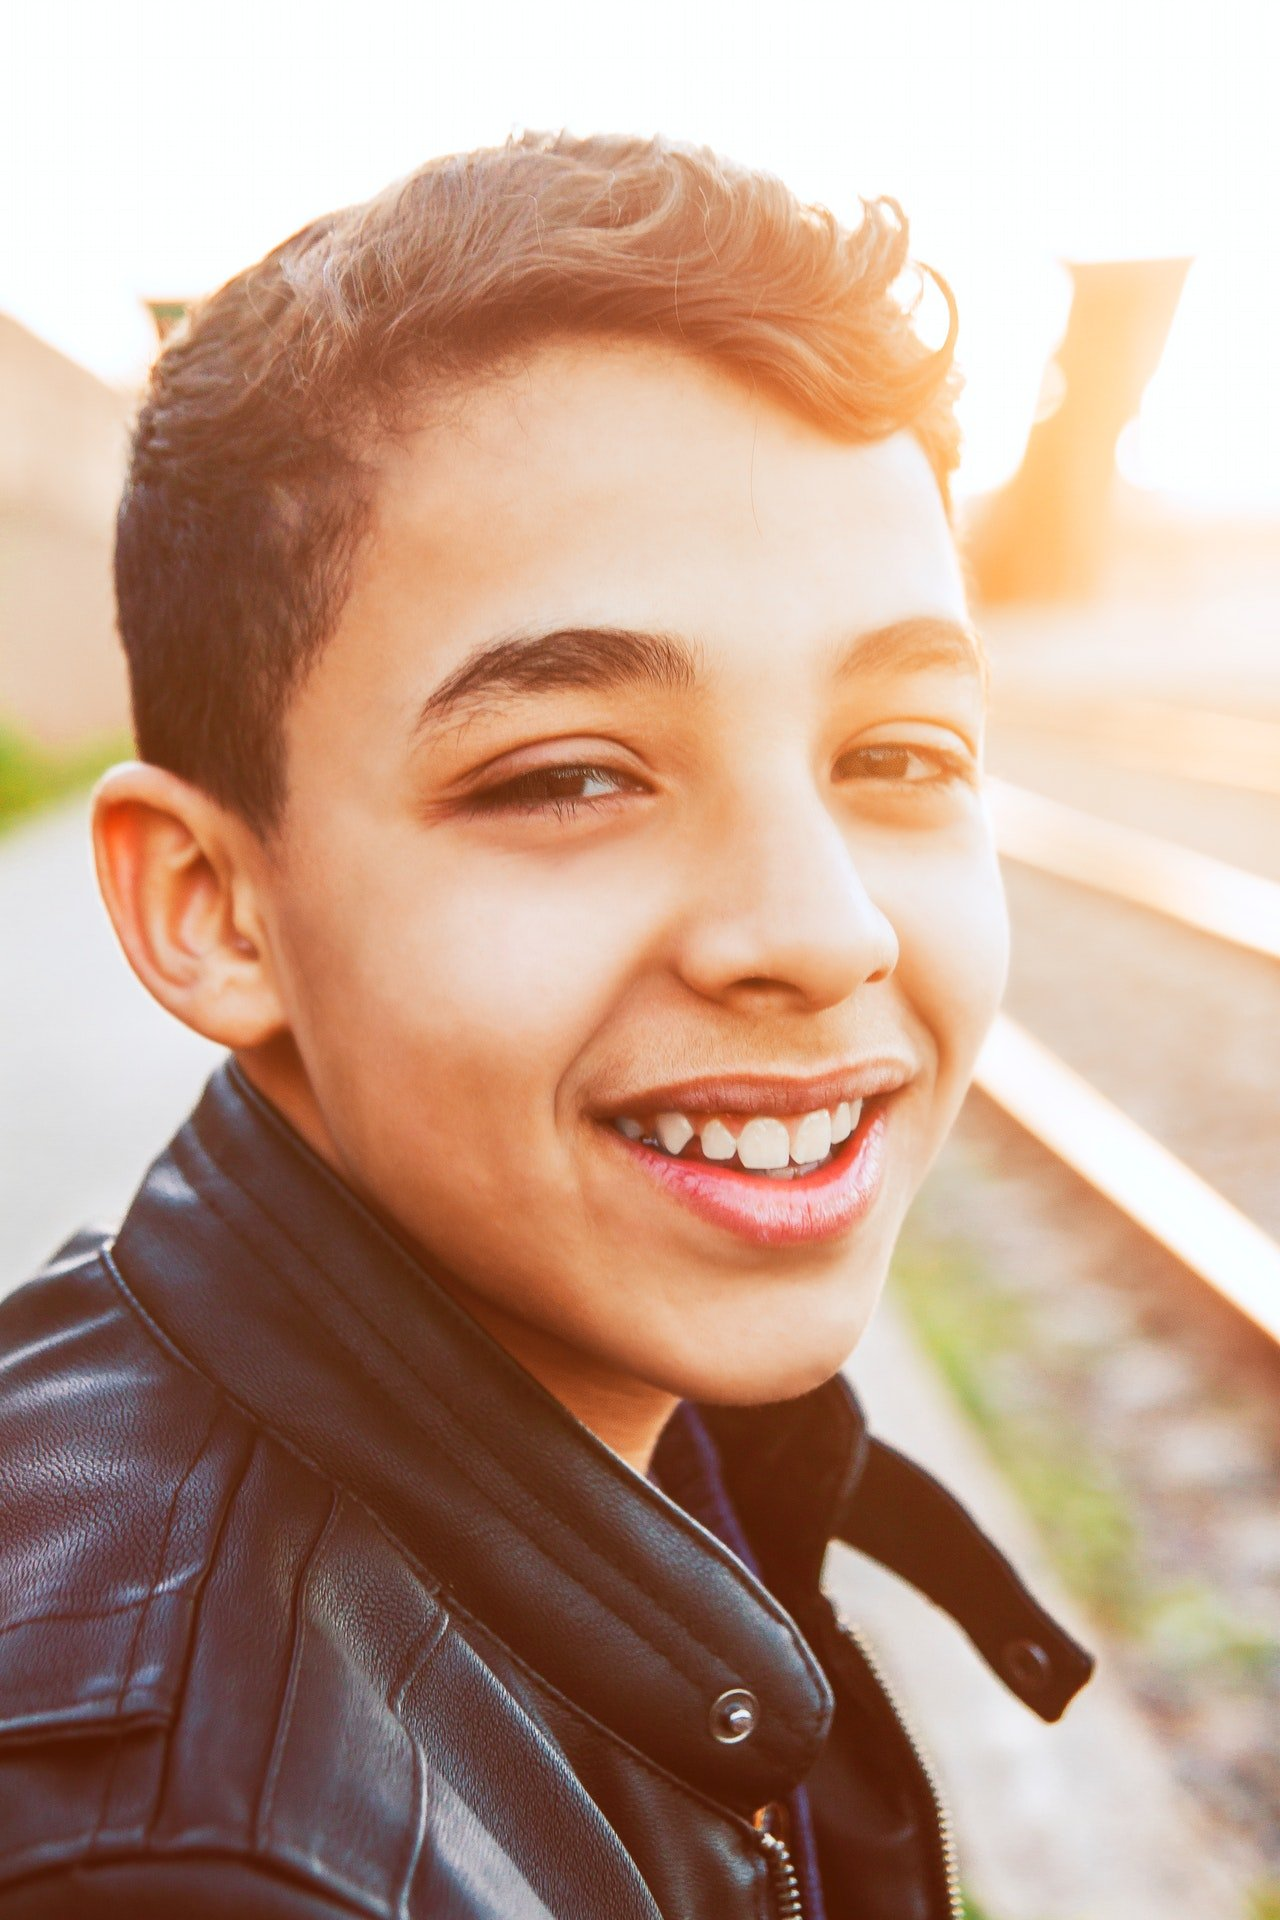 Photo of a young boy smiling   Photo: Pexels